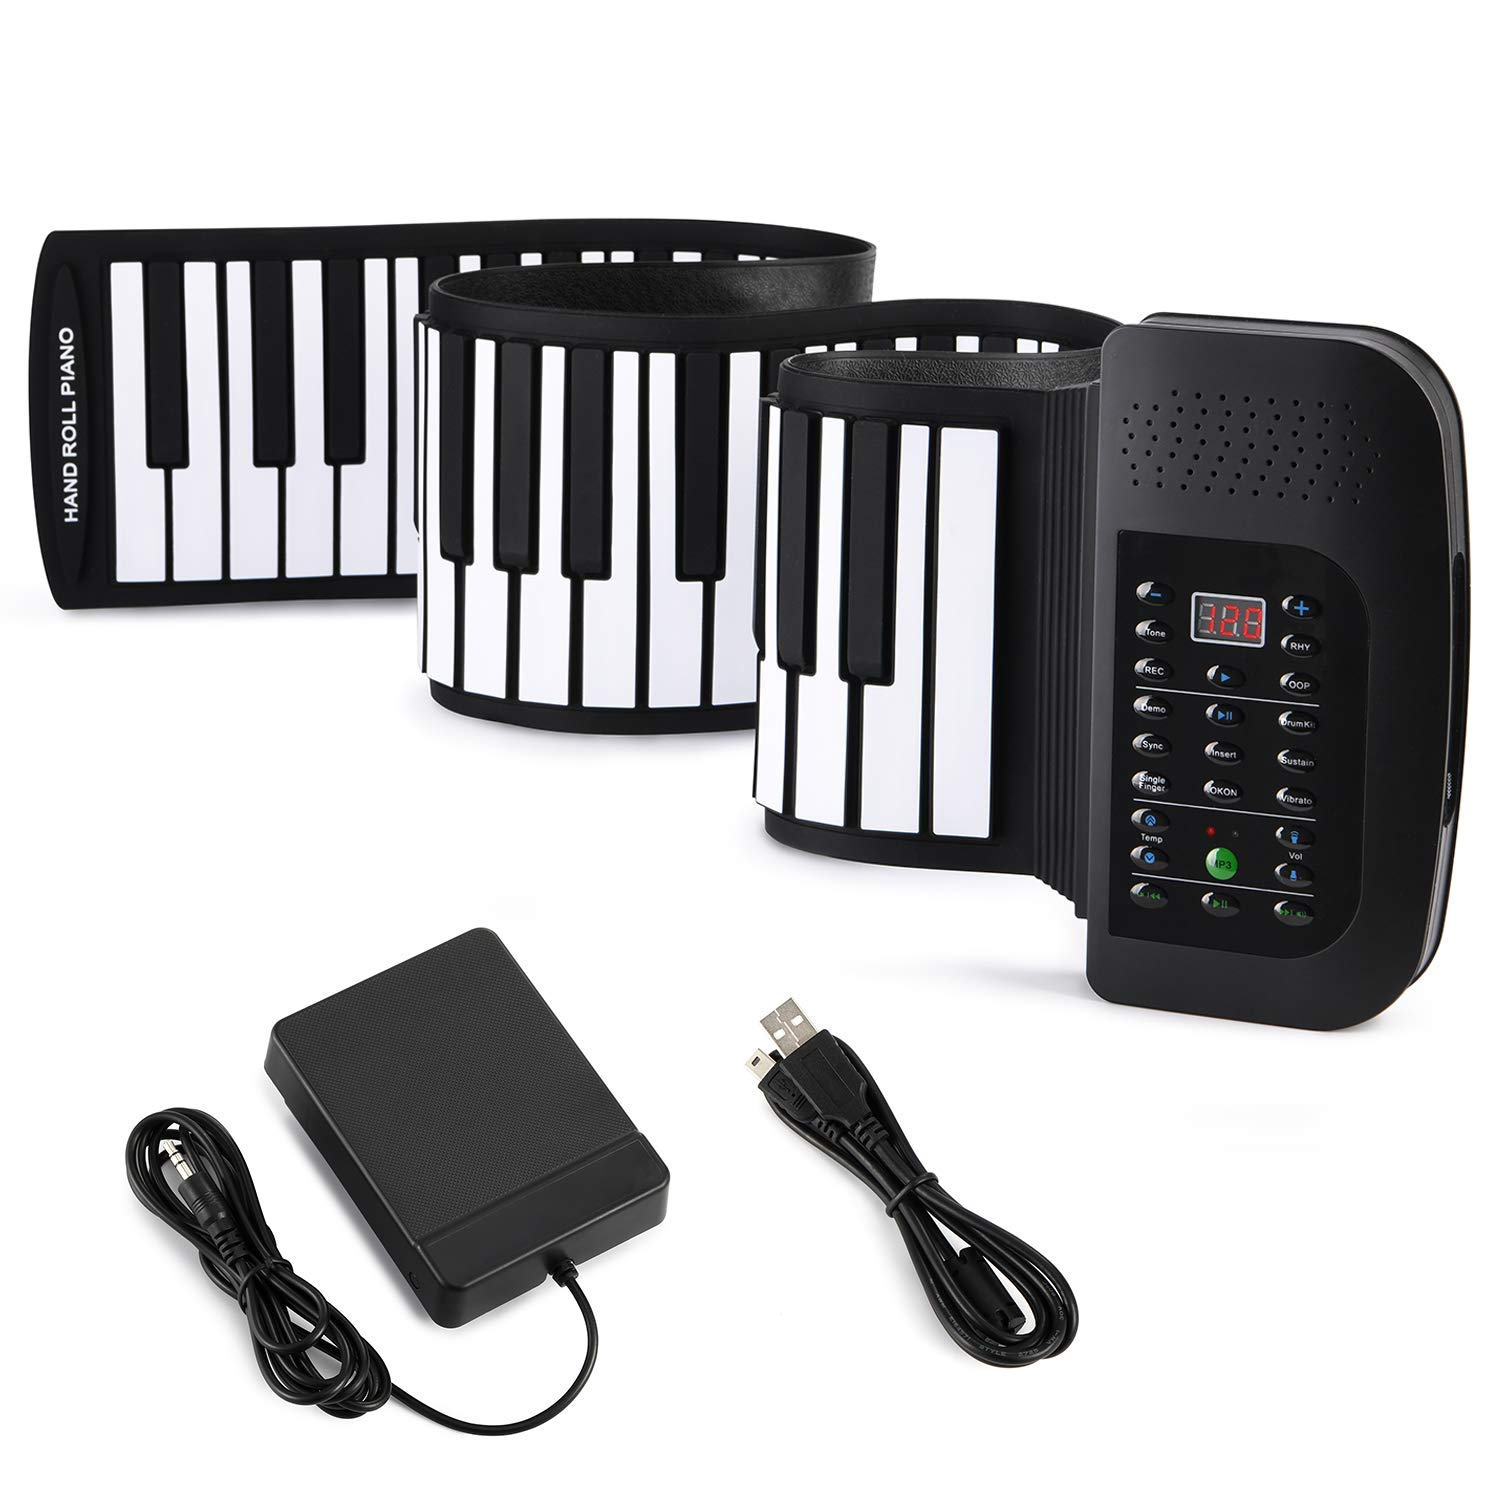 Donner Roll Up Piano Keyboard, 88 Keys Portable for Kids Beginners with Sustain Pedal Black by Donner